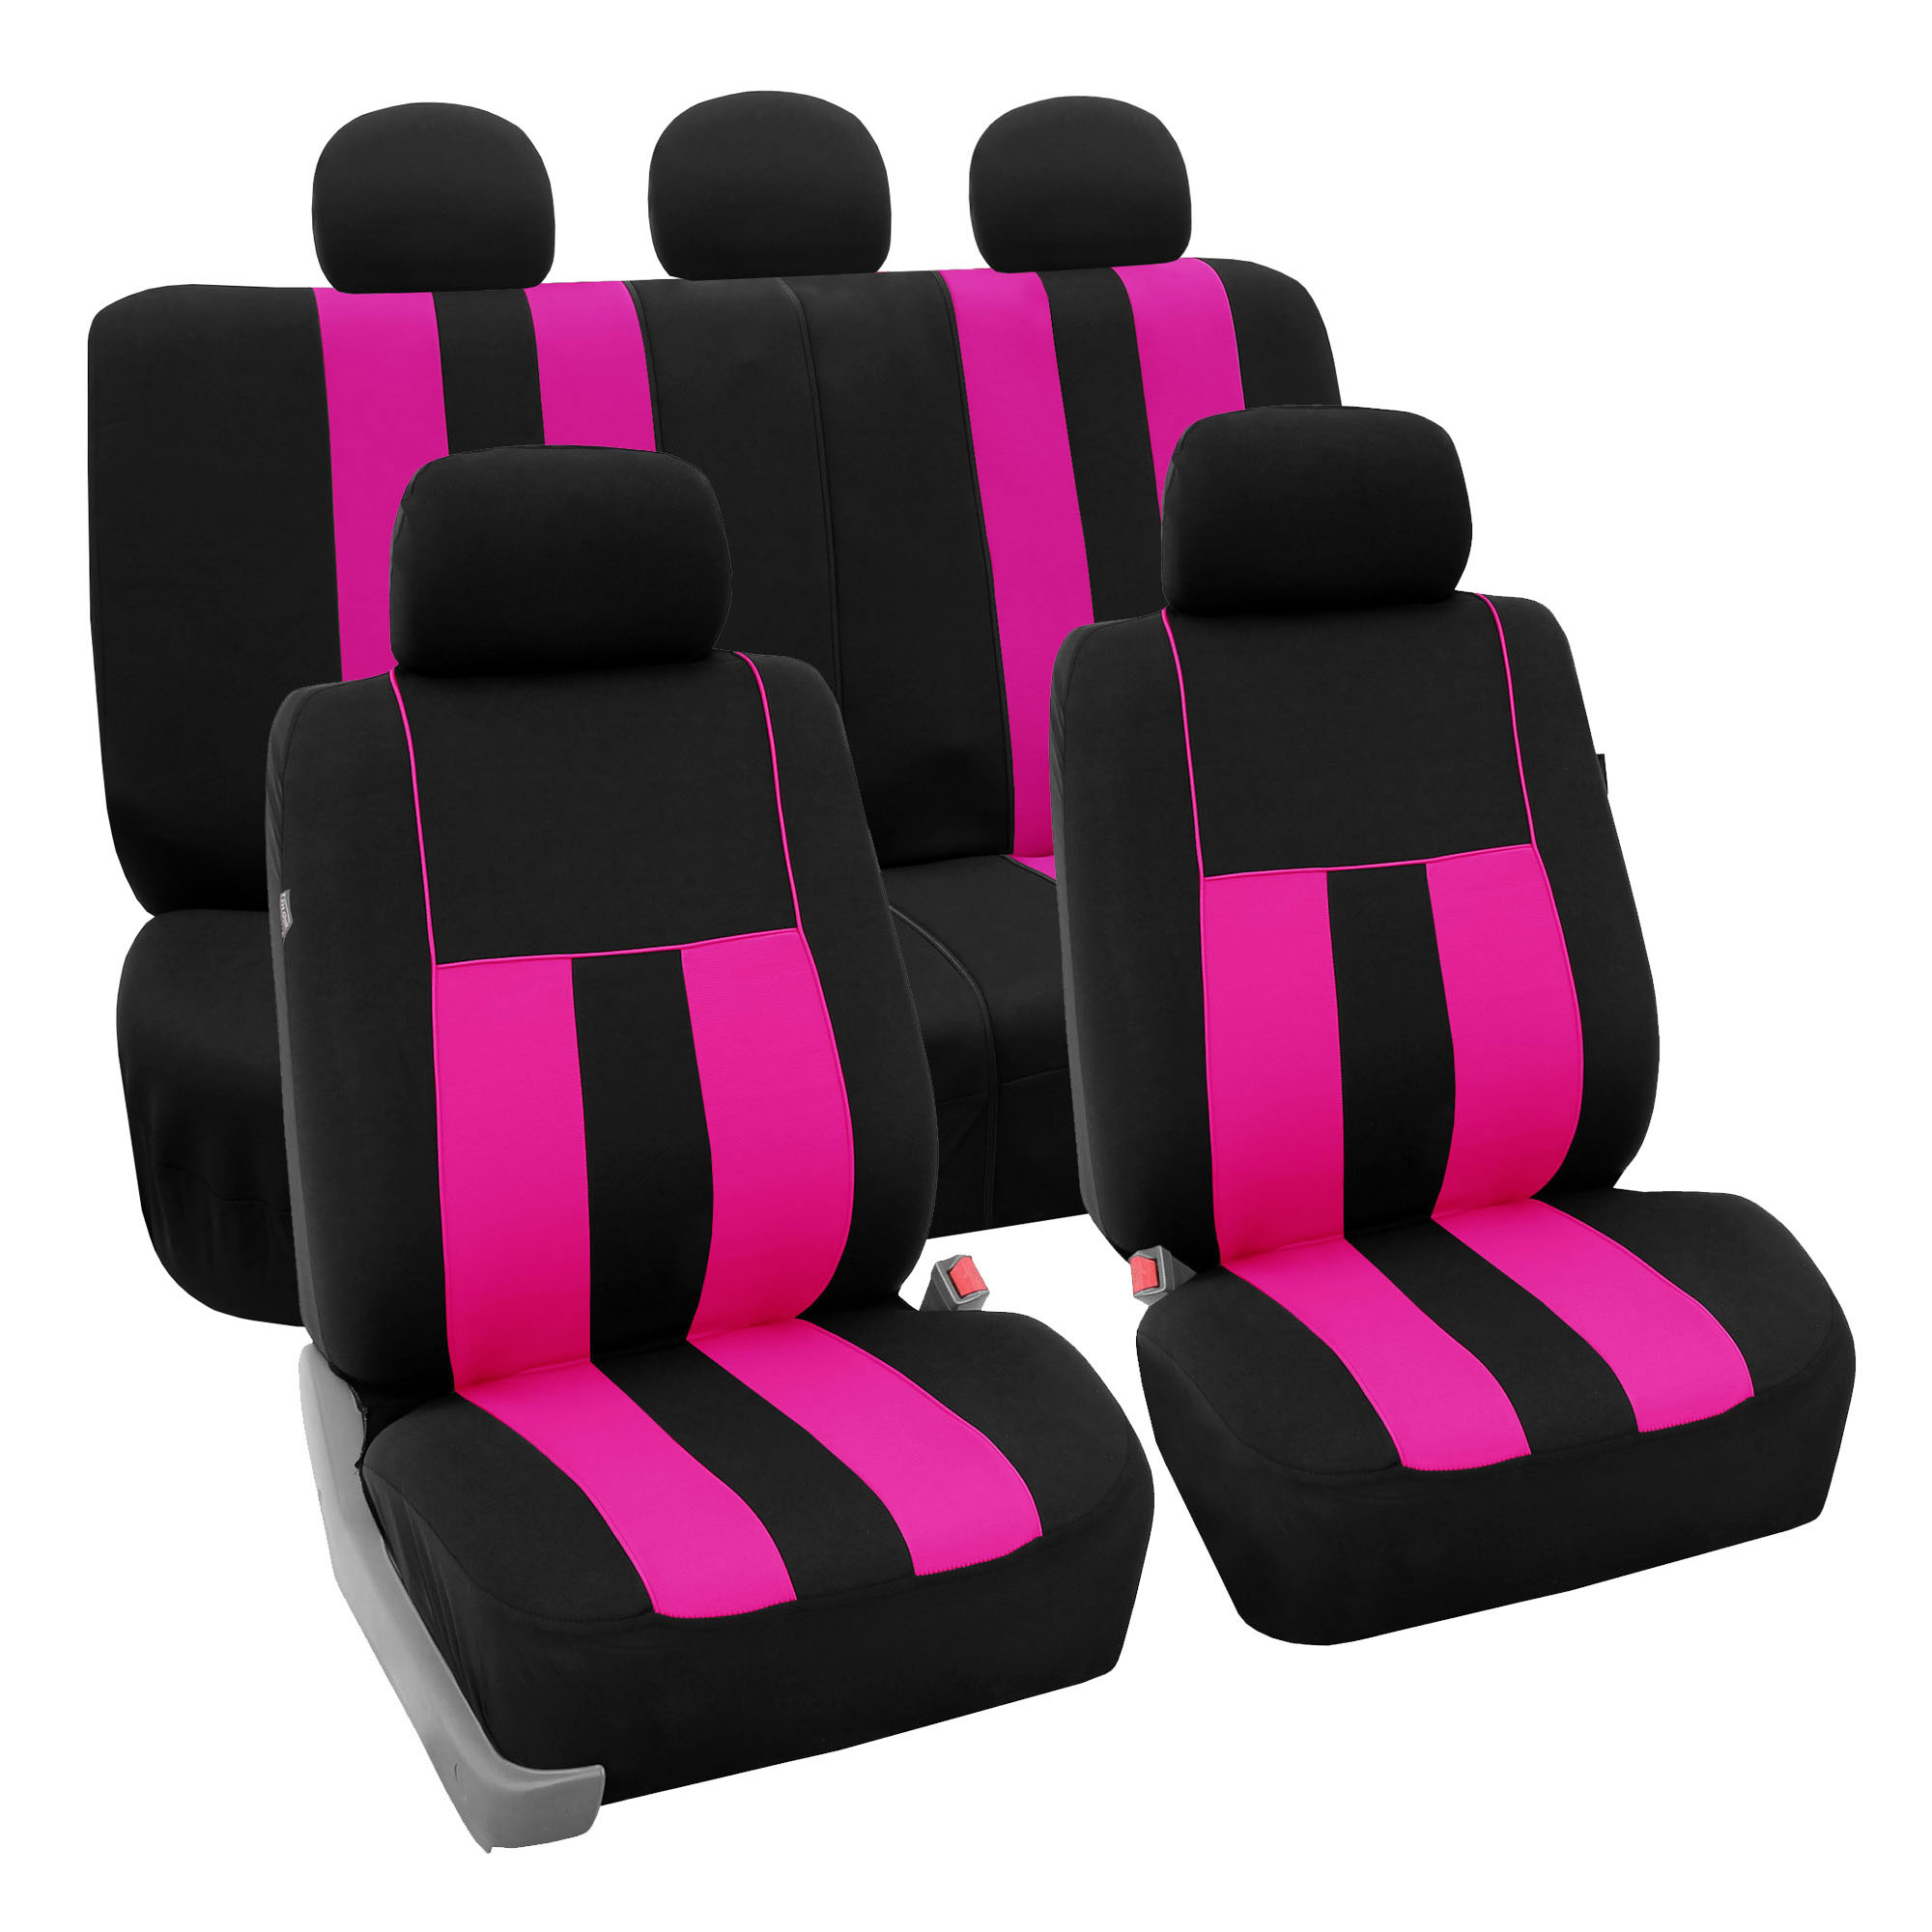 FH Group Striking Striped Airbag Compatible Full Set Seat Covers with Split Bench Function, Pink and Black